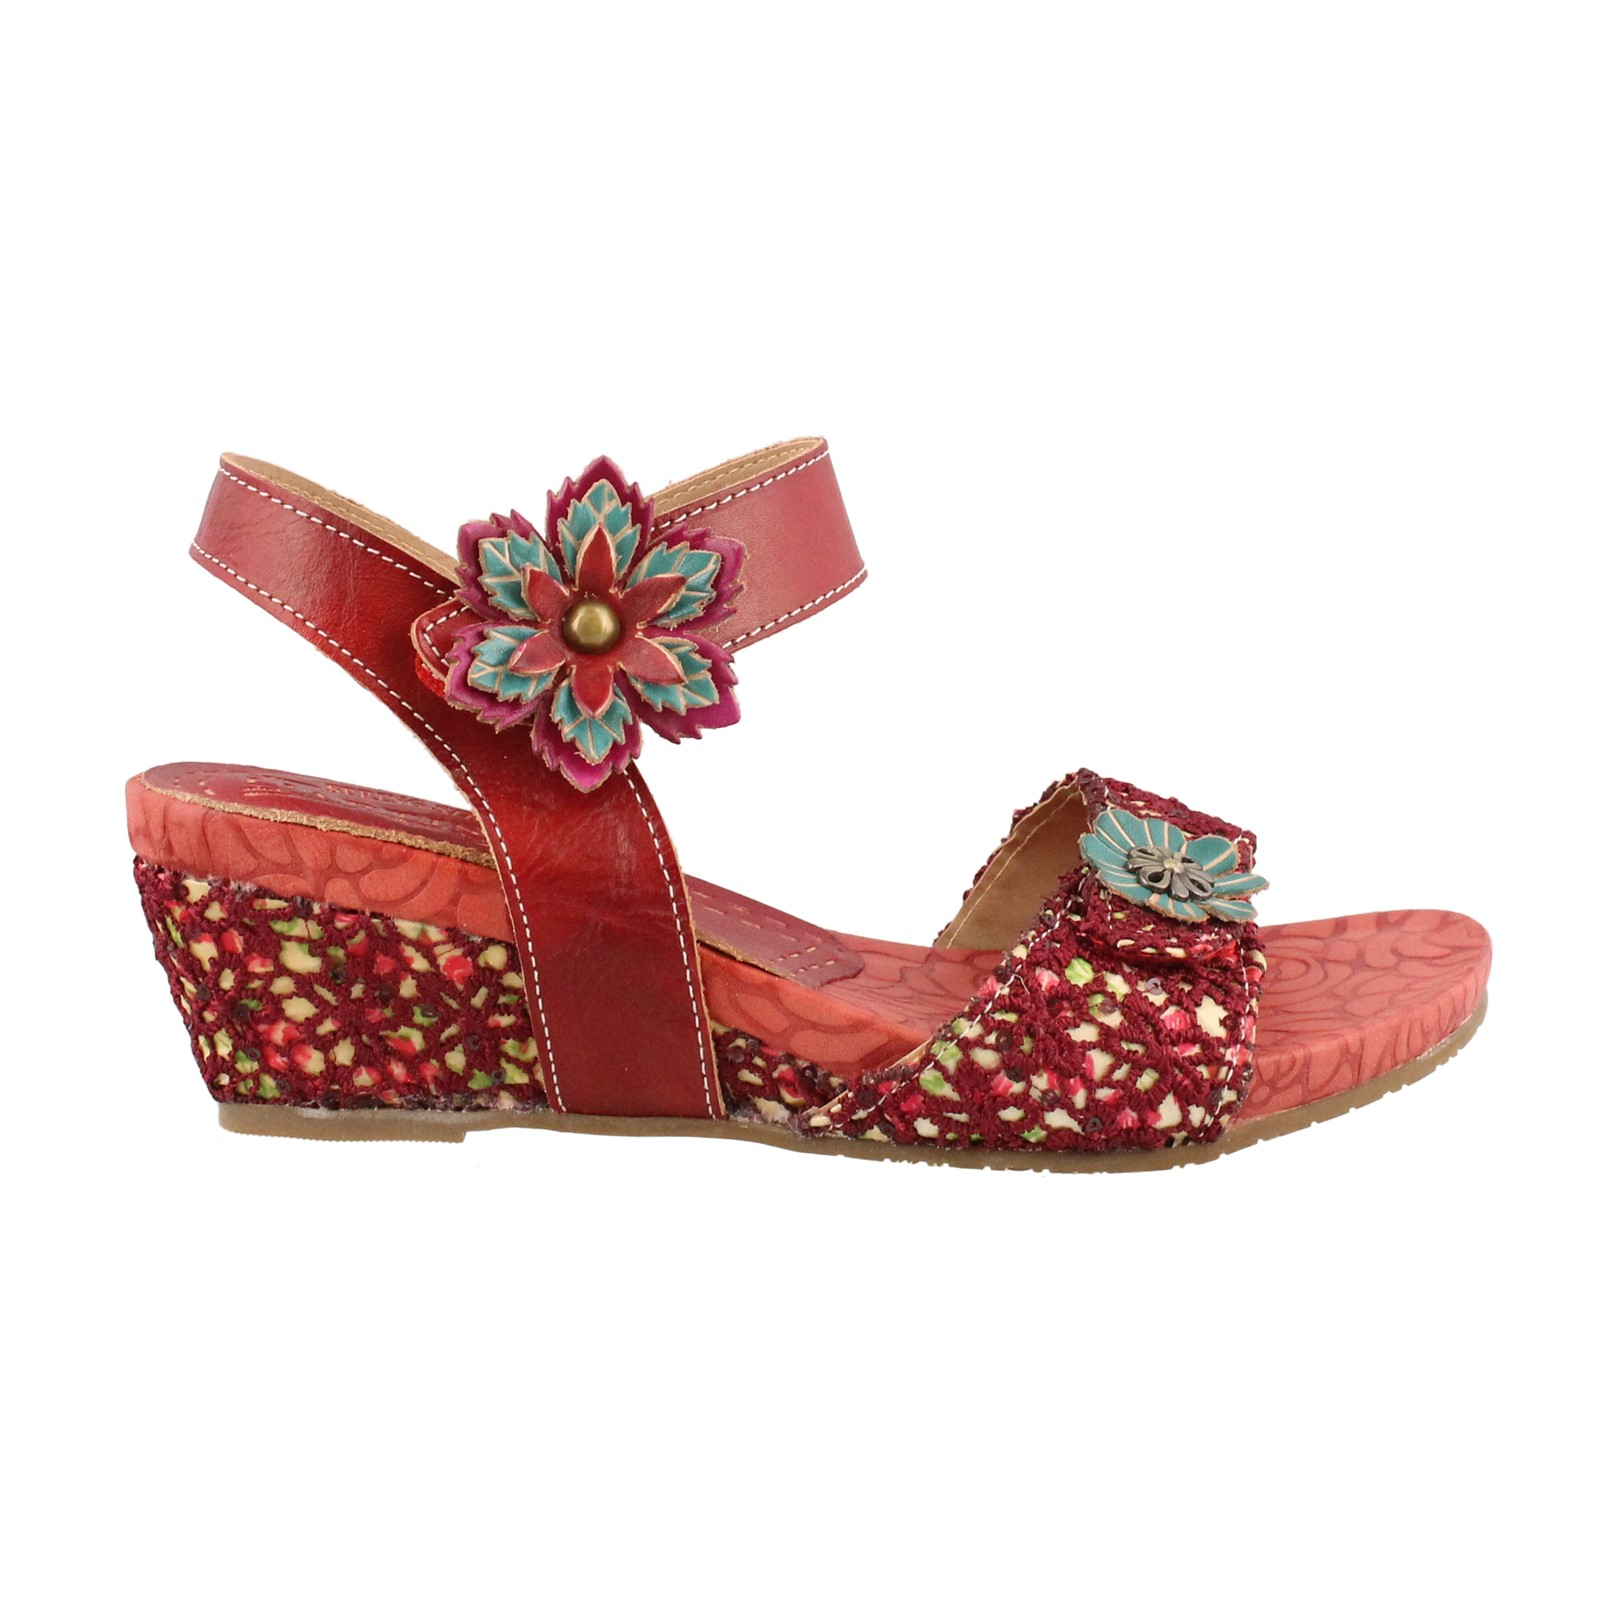 Women's L'Artiste by Springstep, Laisis Mid Heel Sandals